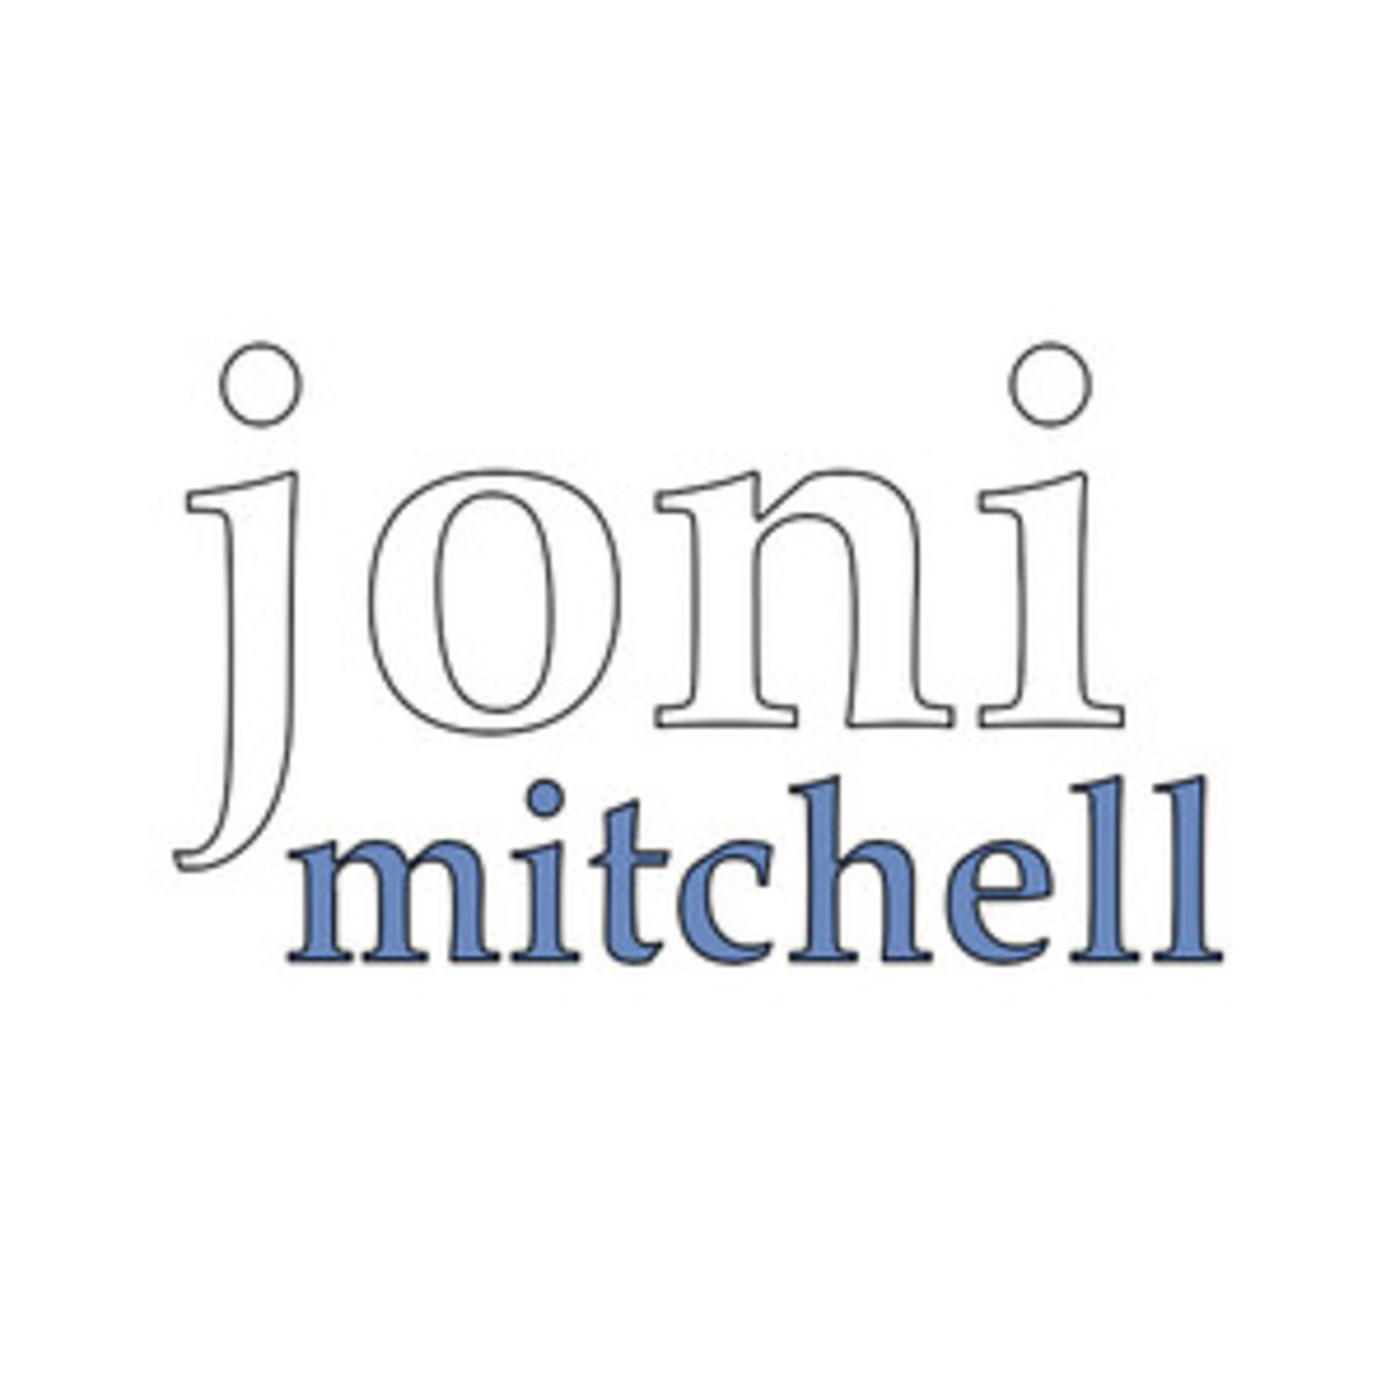 Joni Mitchell - Official Playlist - Big Yellow Taxi, A Case Of You, Conversation, Both Sides Now